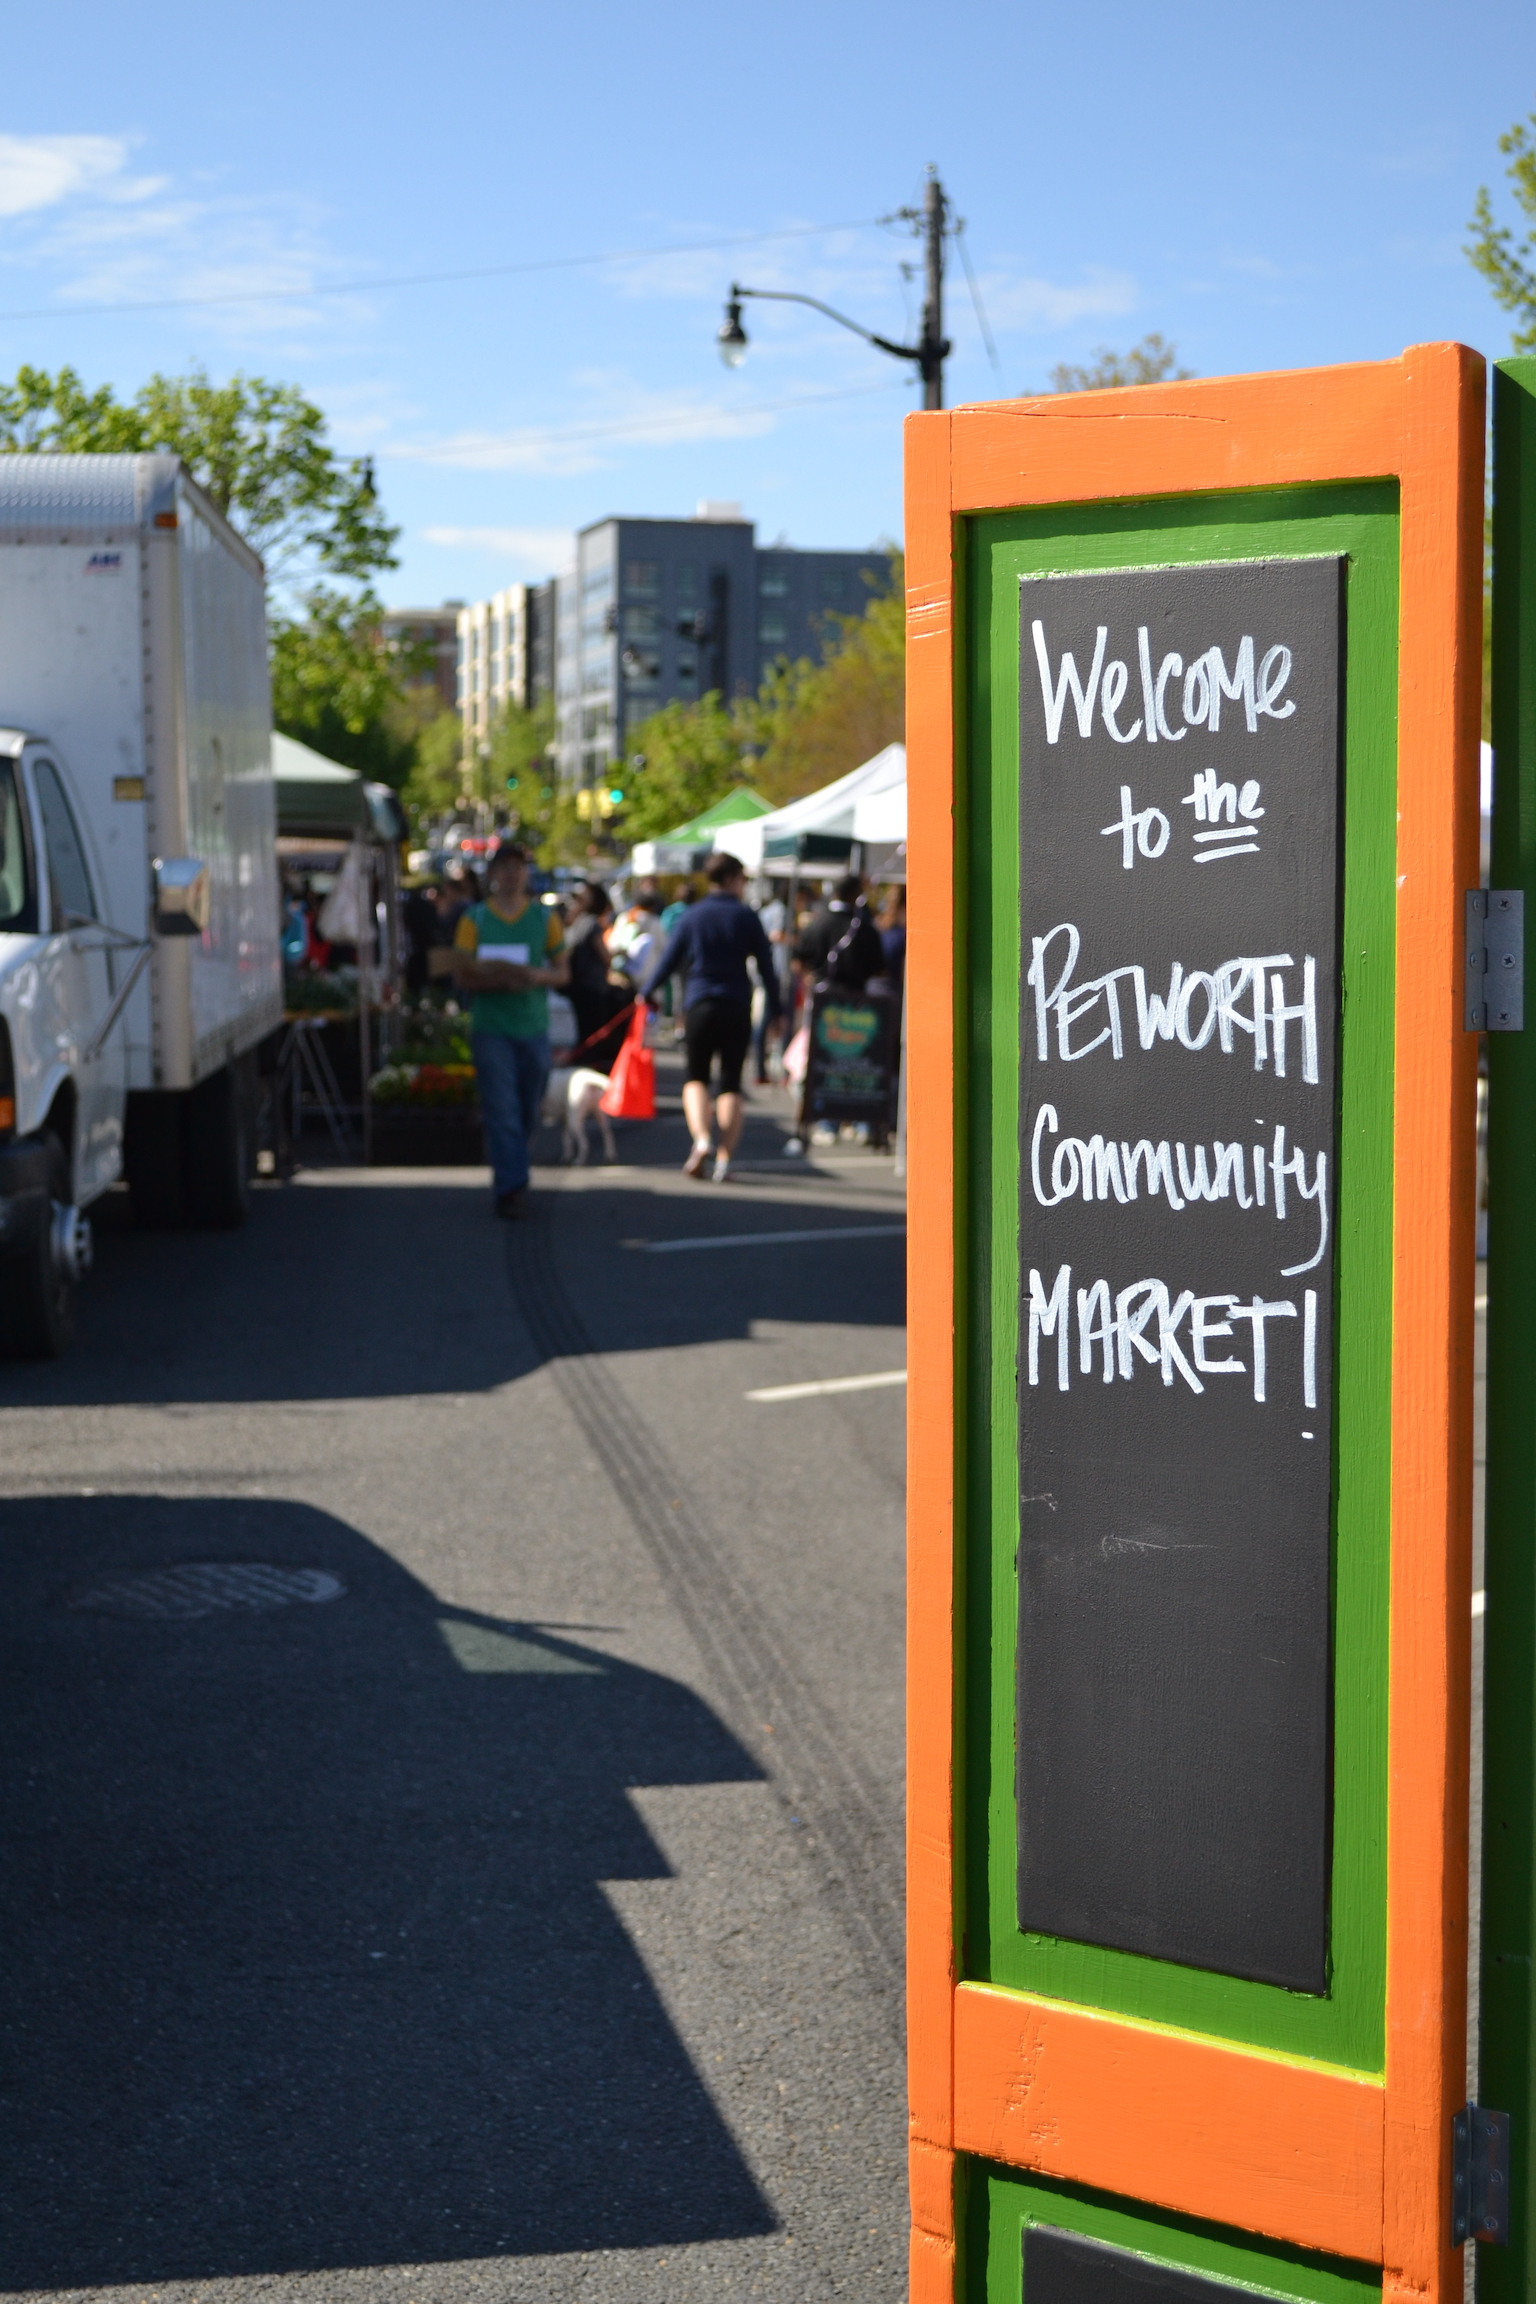 Welcome to the Petworth Community Market